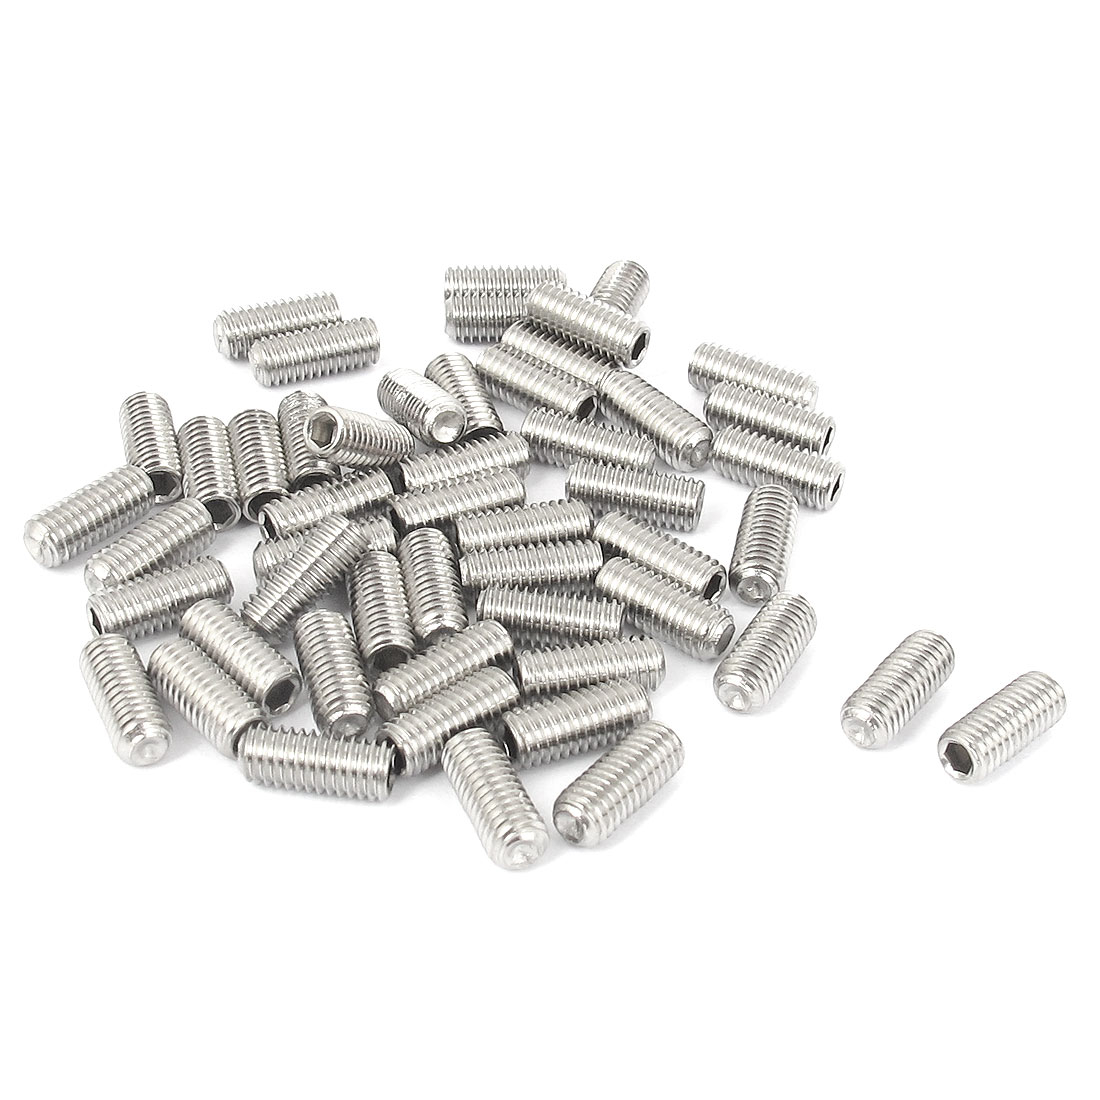 M5x12mm Stainless Steel Hex Socket Set Cap Point Grub Screws Silver Tone 50pcs